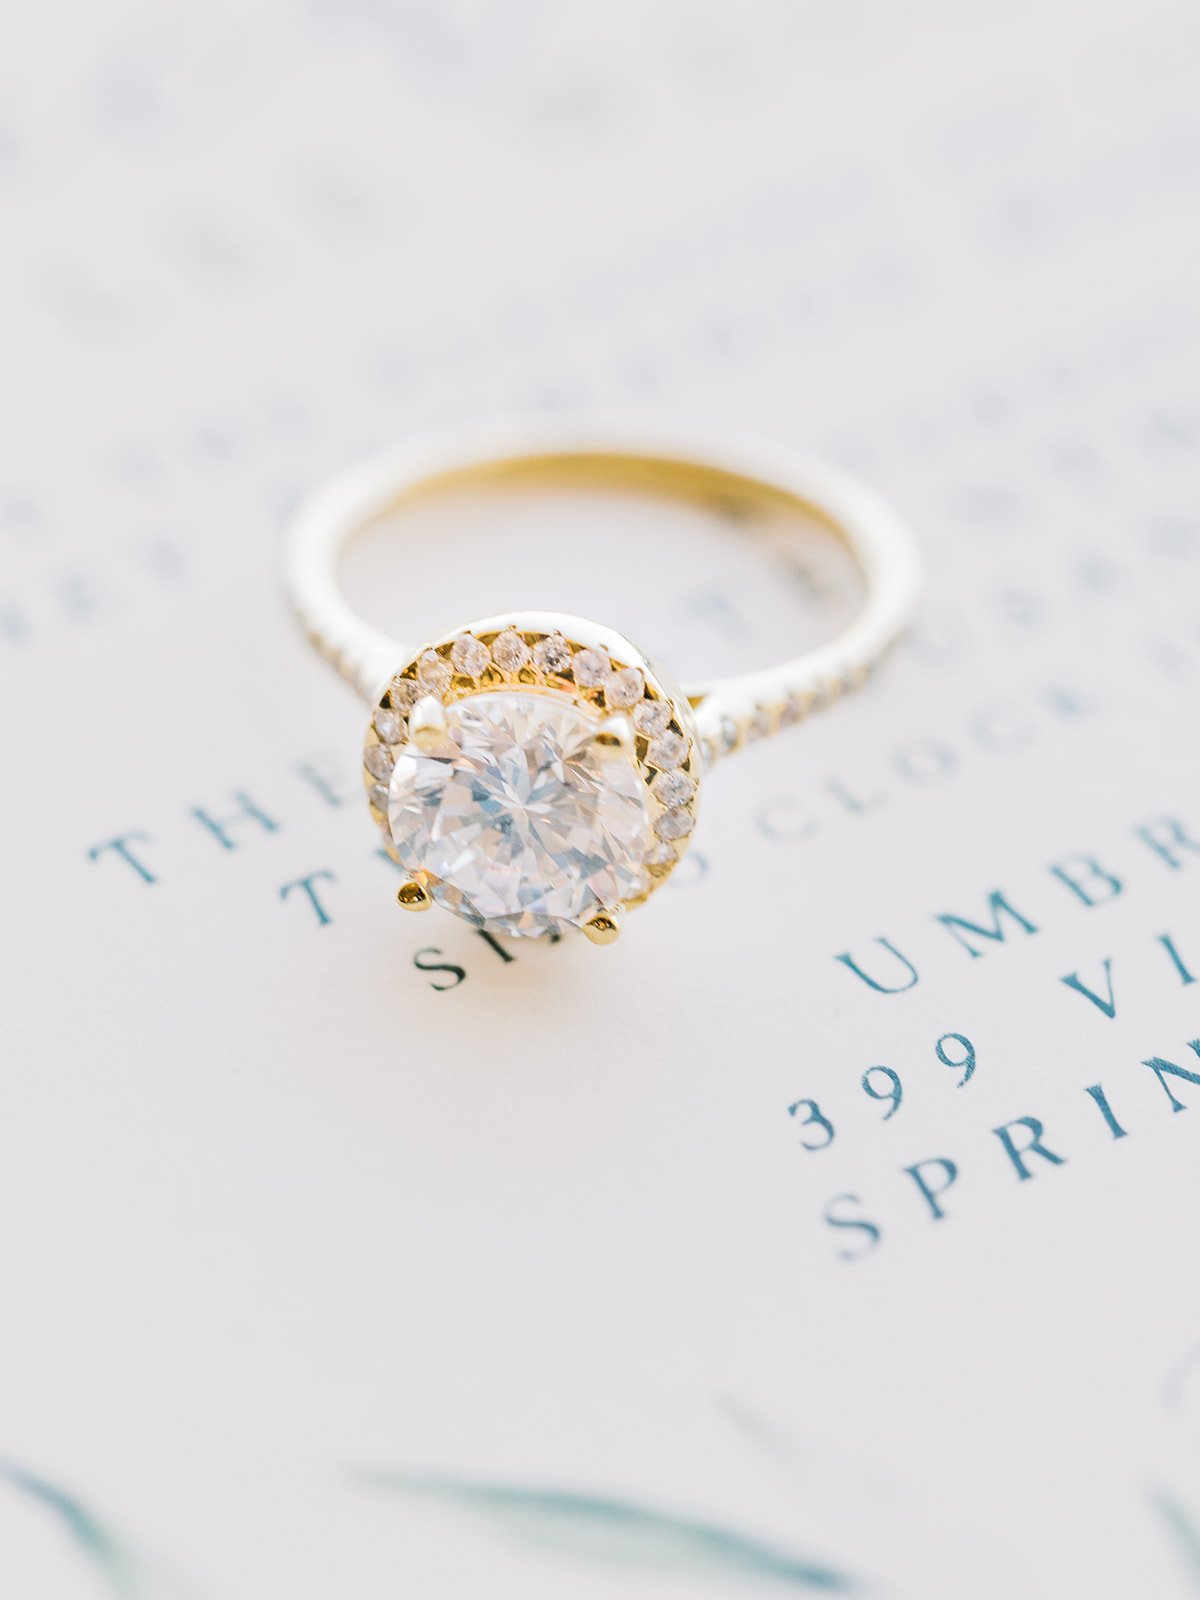 Engagement ring: Elopement vineyard wedding at Umbra Winery by Alexa Kay Events. See more wedding ideas at alexakayevents.com!